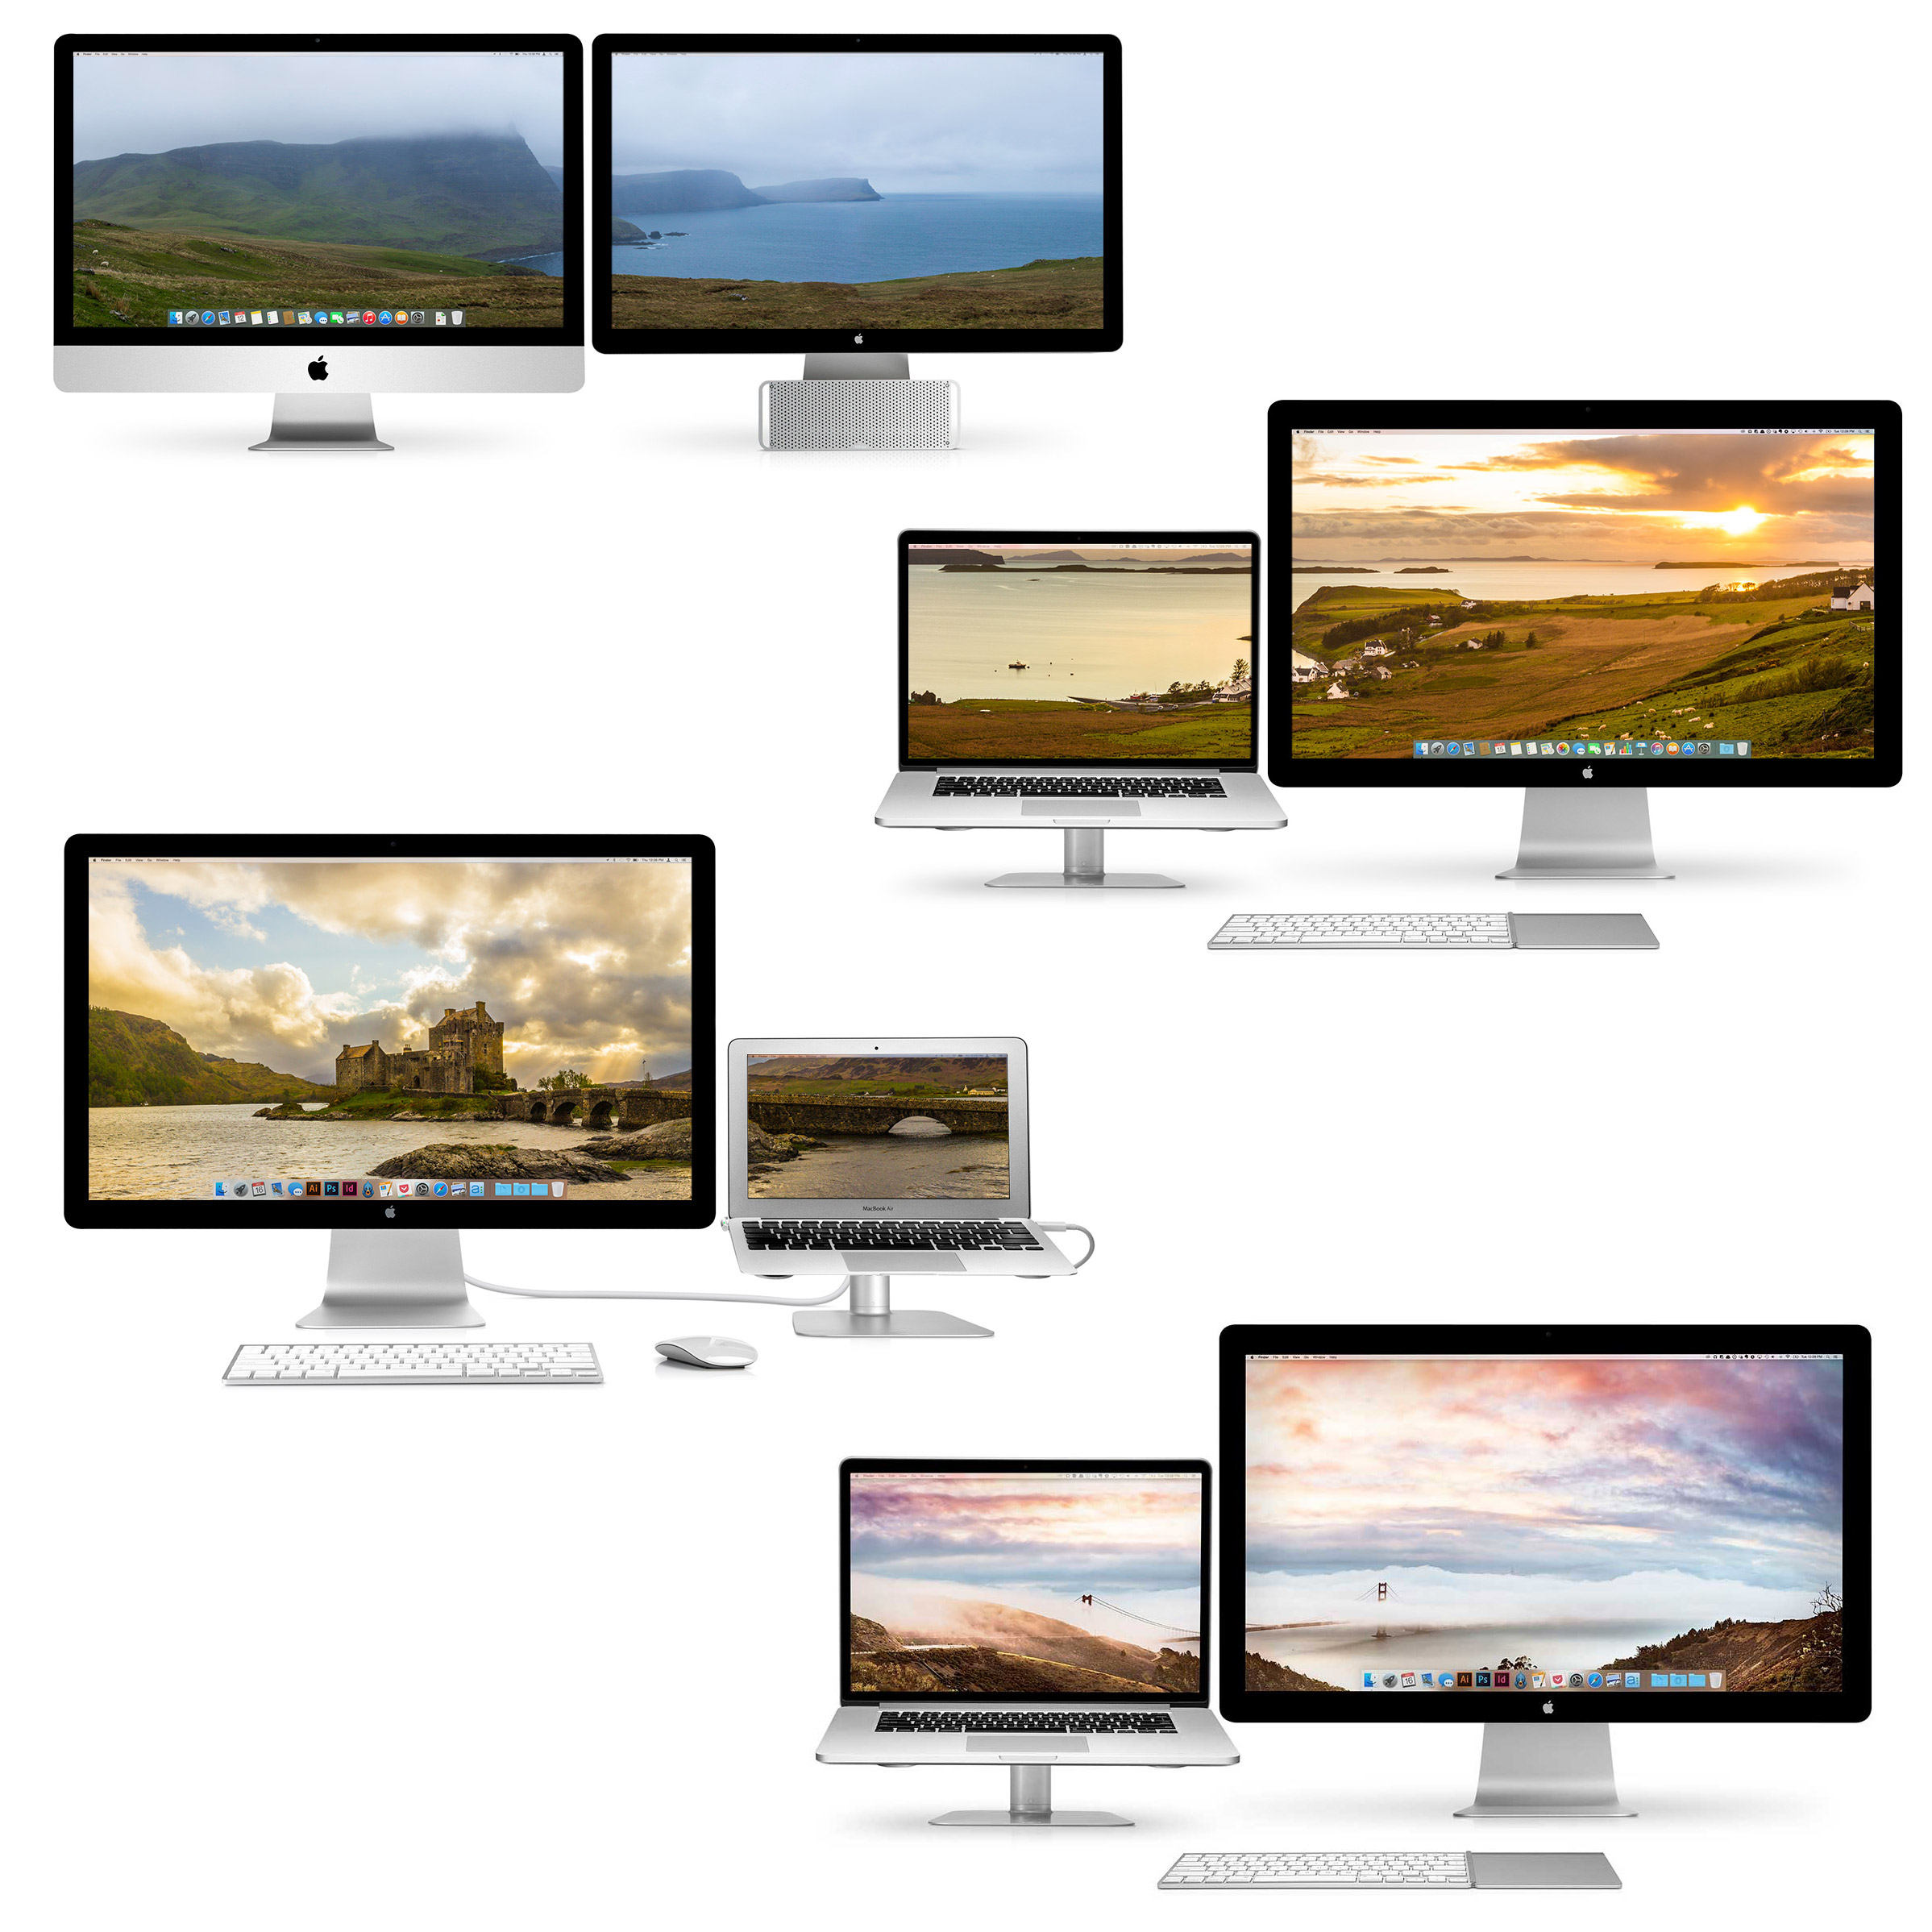 Free Dual-Display Wallpaper for Your Macs